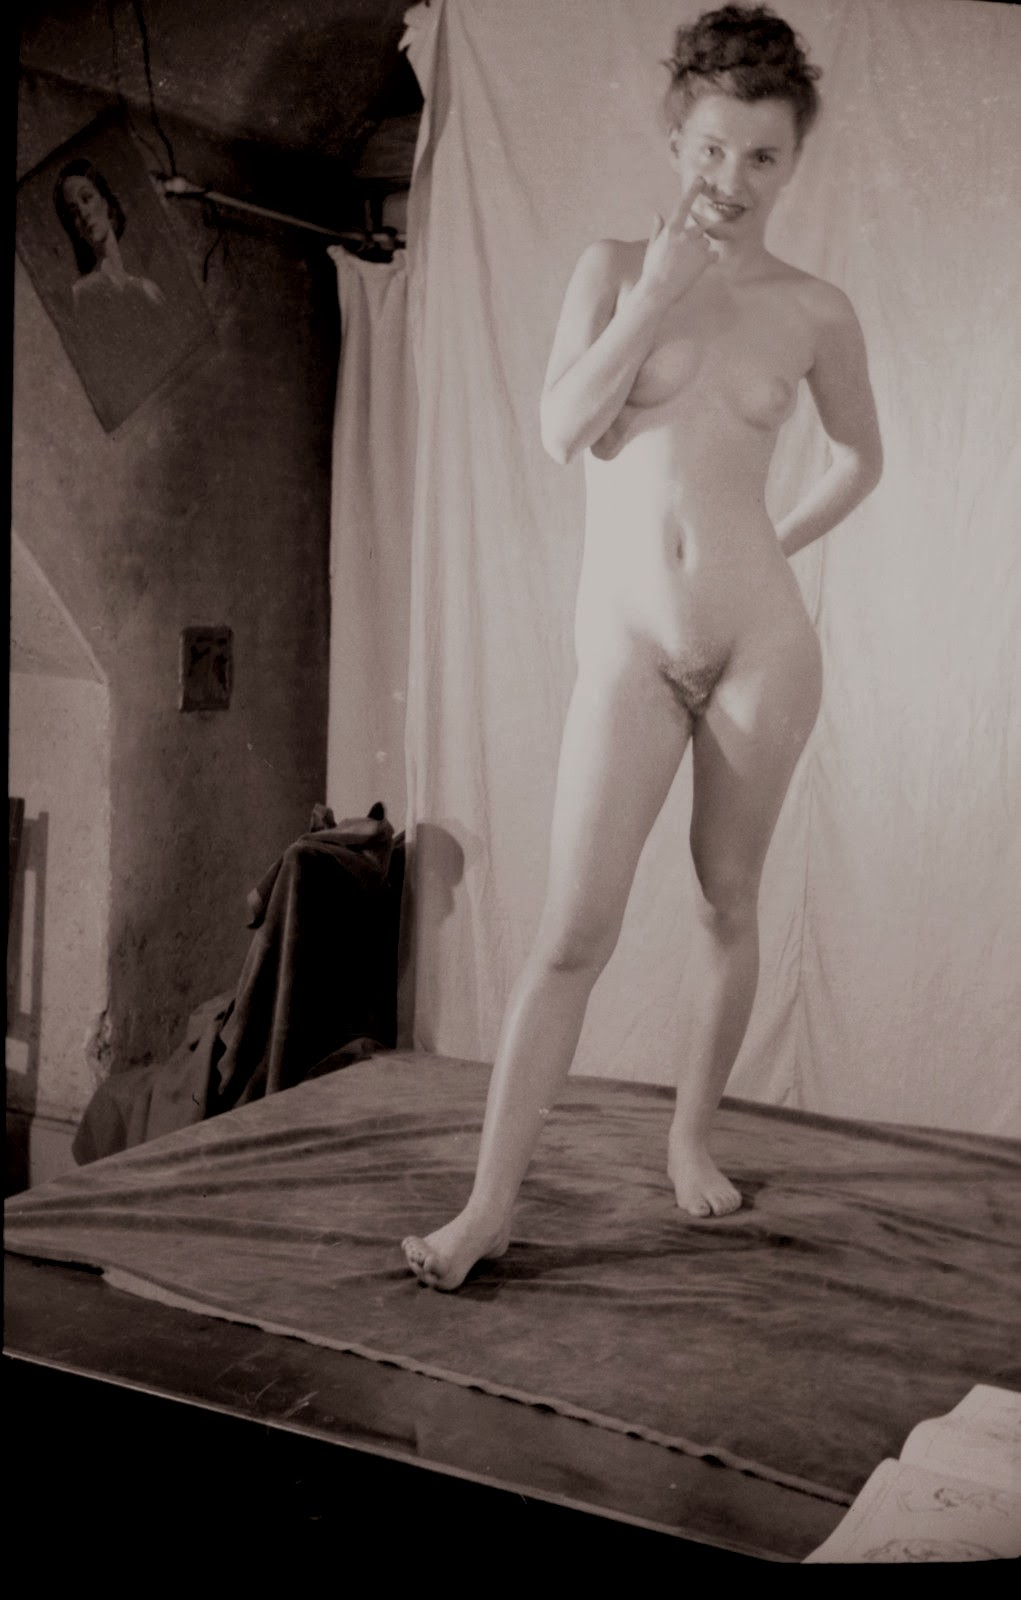 Consider, Nude figure drawing models topic, interesting